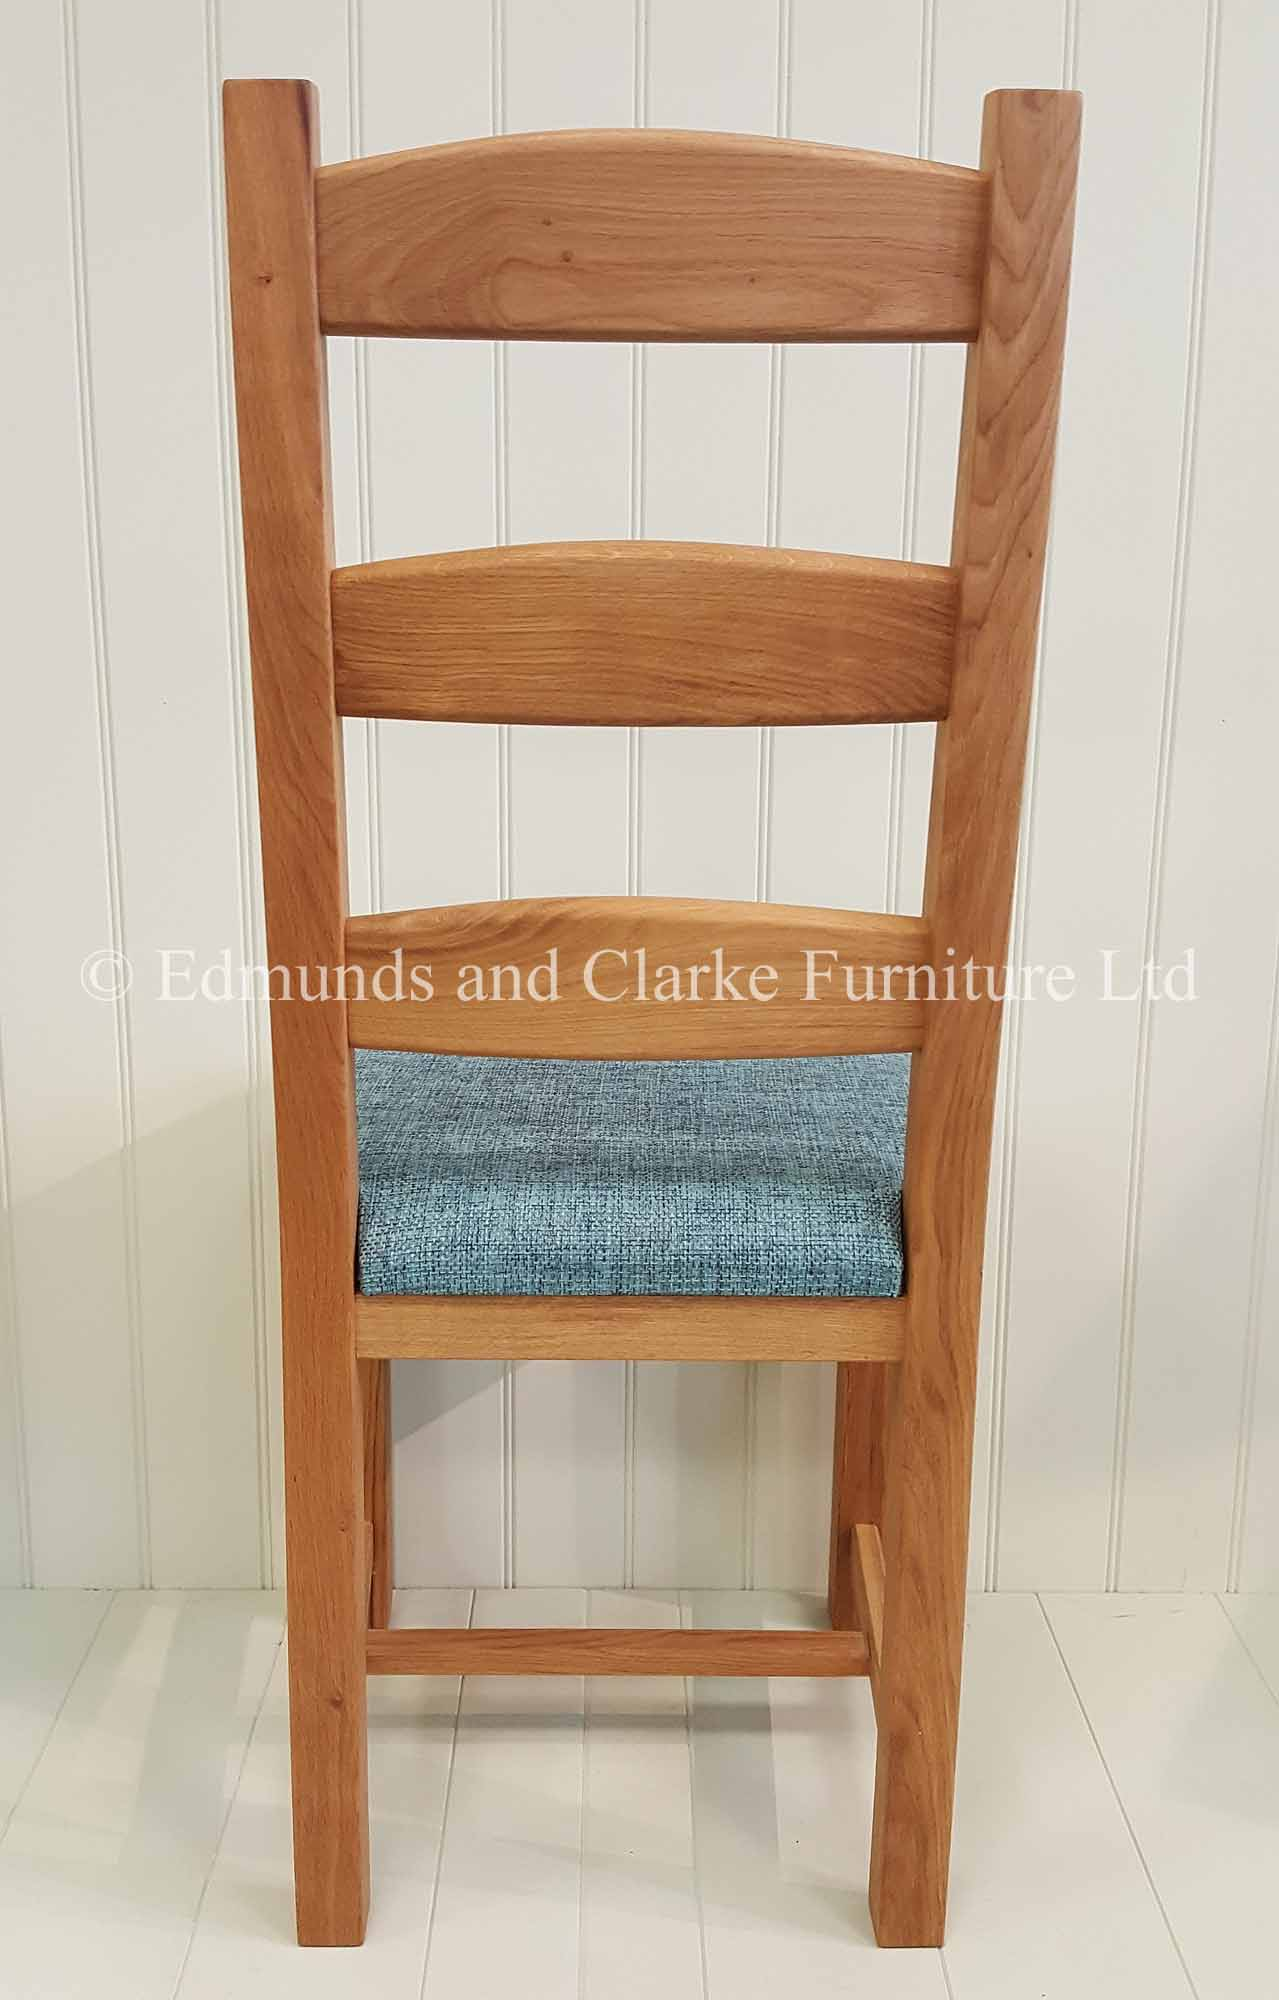 Provence solid oak chair oiled or lacquered with fabric or leather seat pads